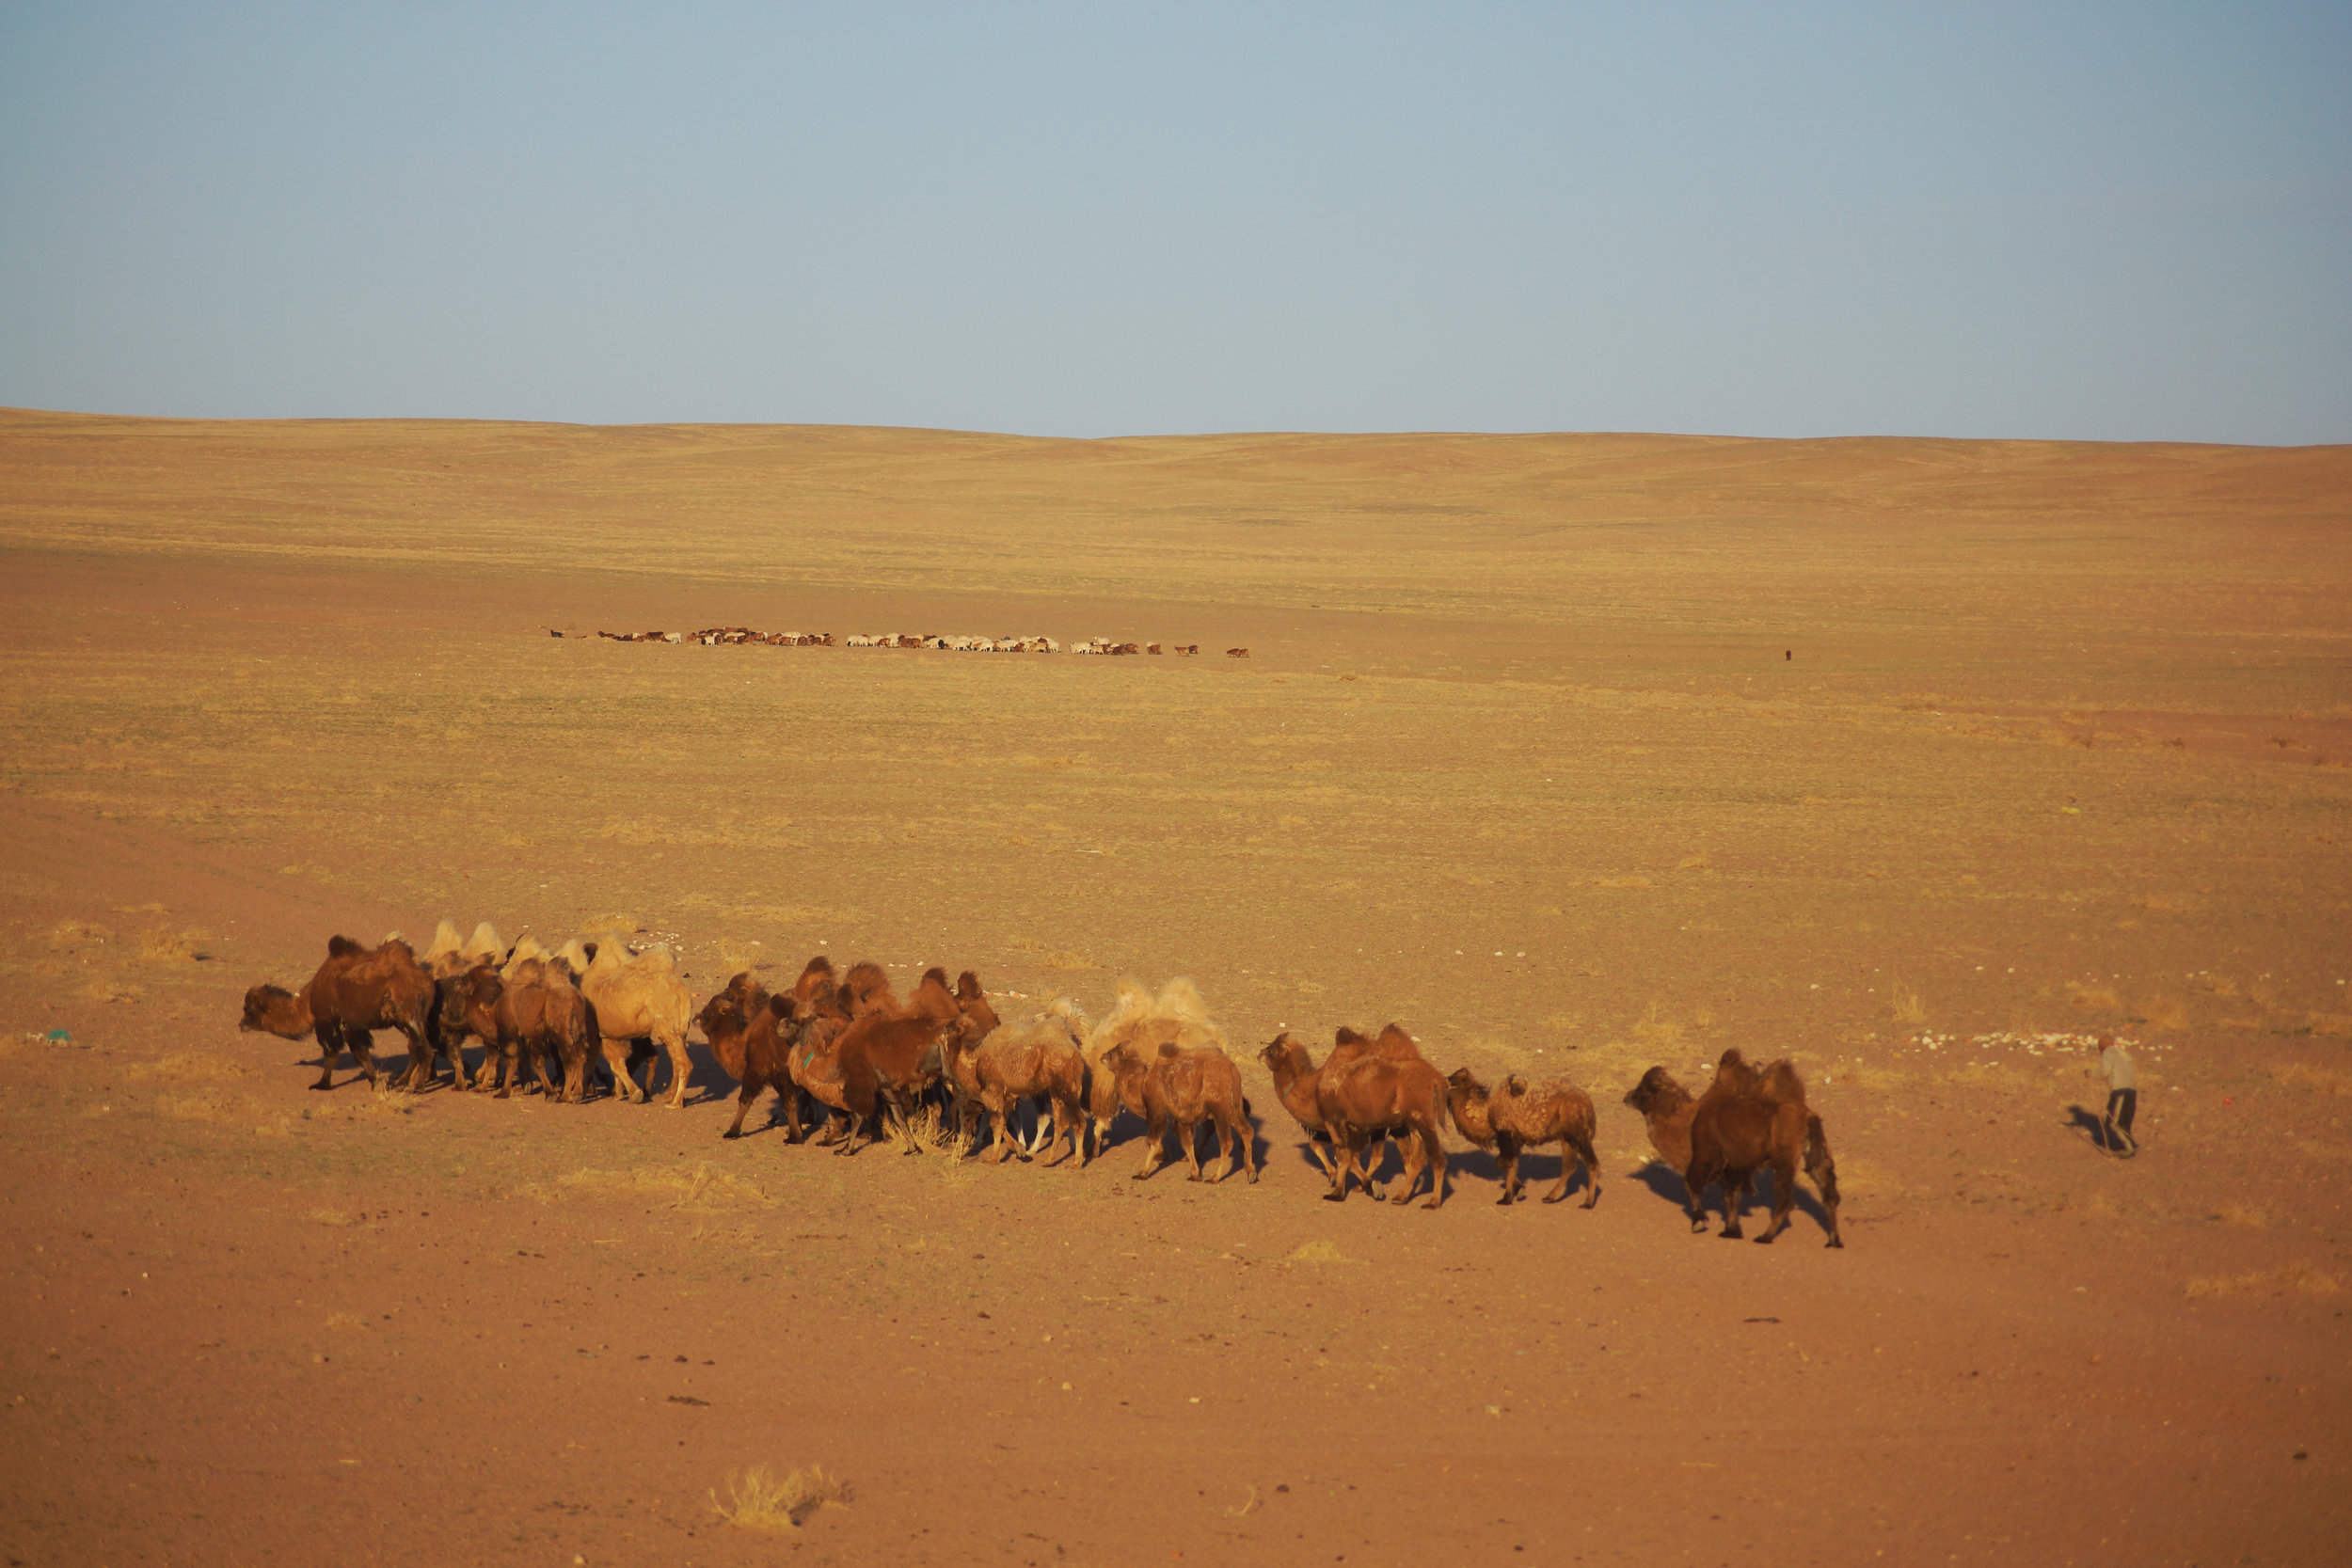 Bactrian camels in the eastern Gobi Desert, followed by their herder.